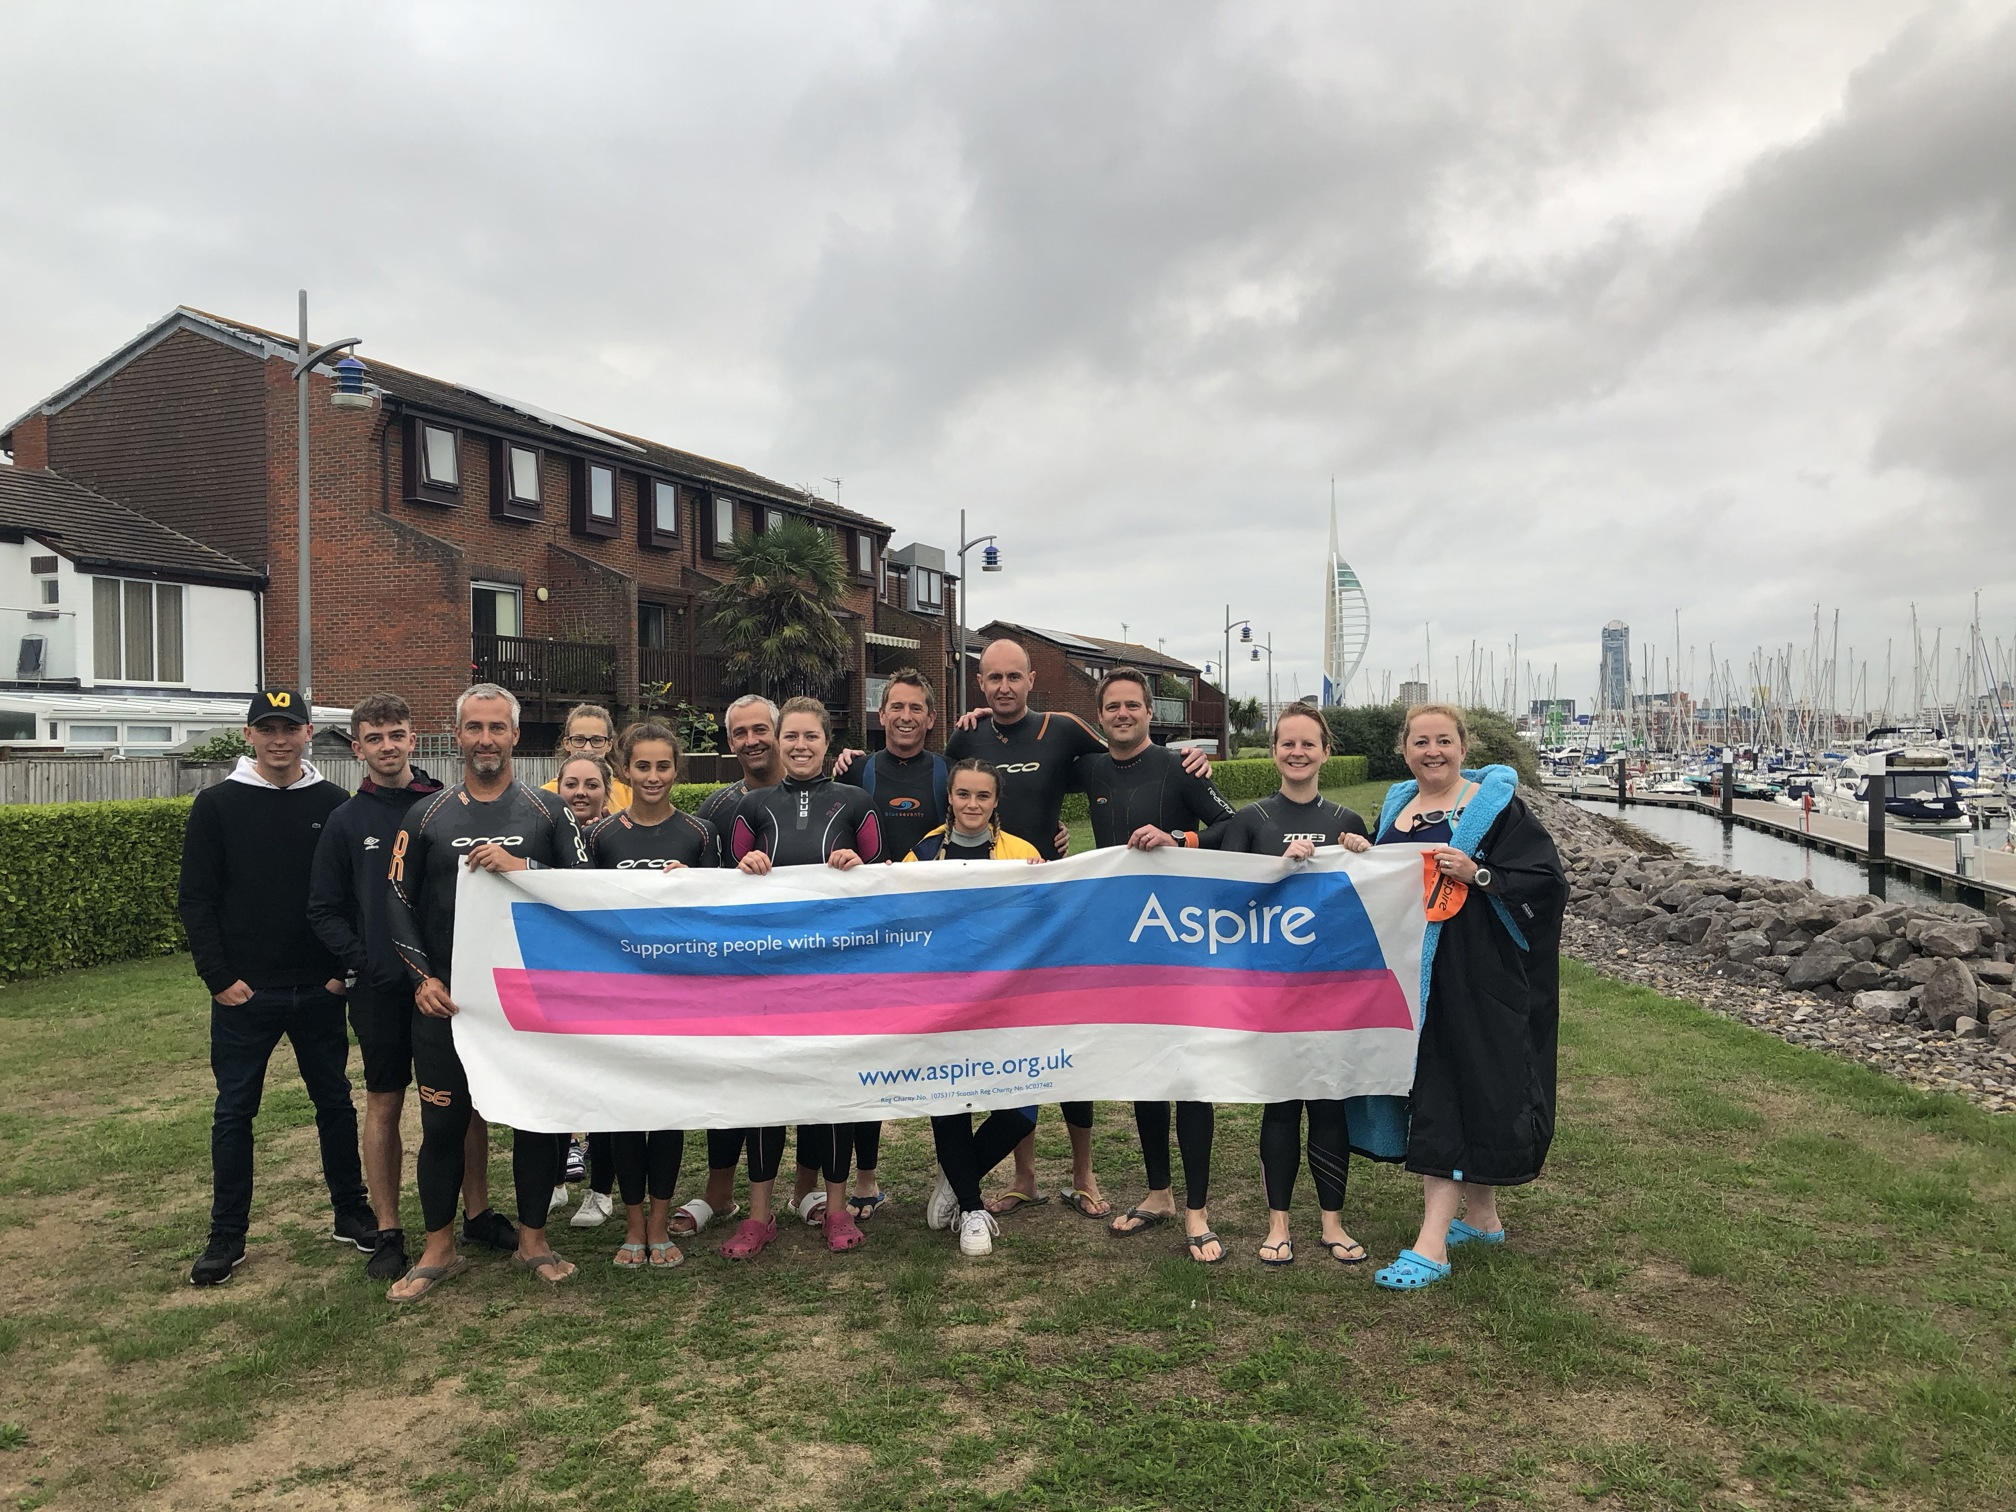 The Solent swimmers holding up an Aspire banner before the swim